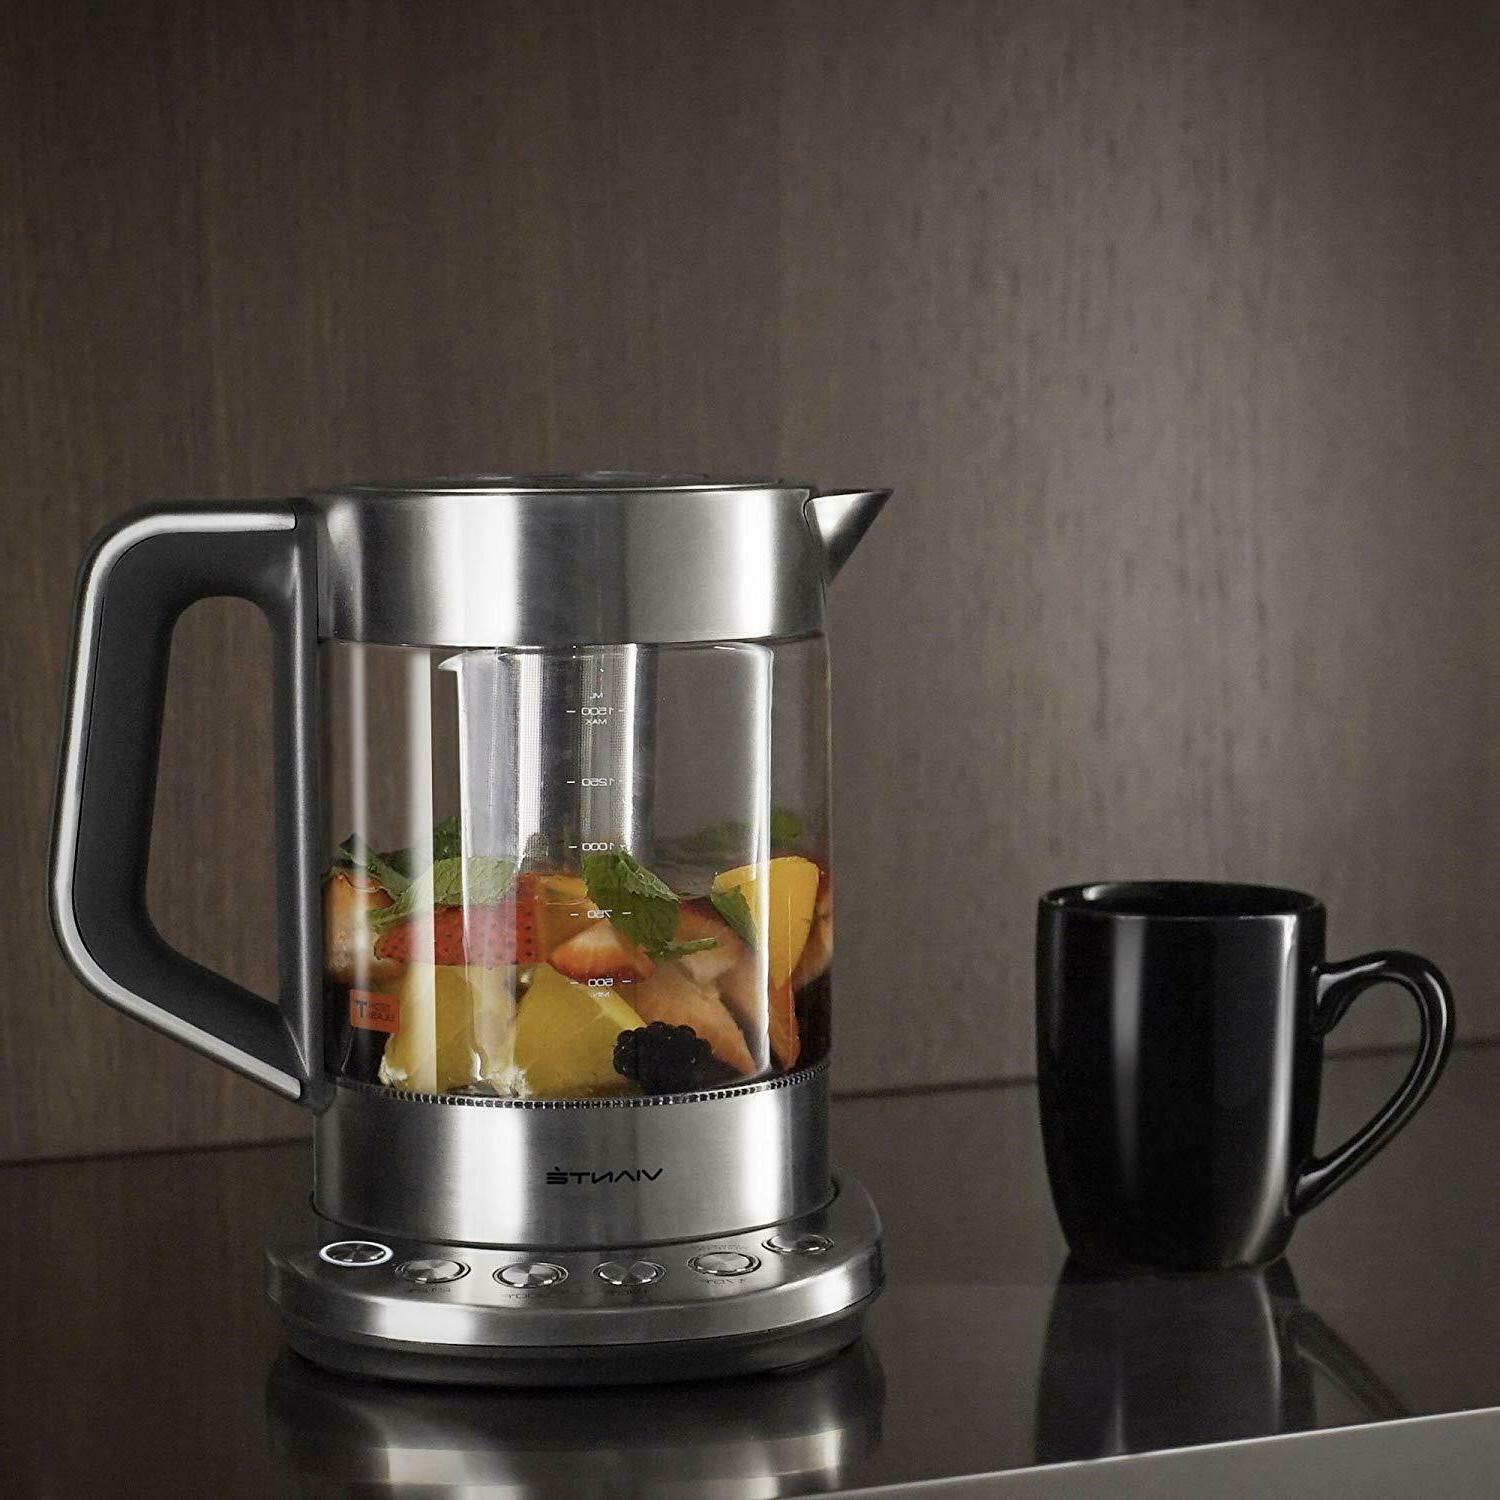 electric glass tea kettle with tea infuser